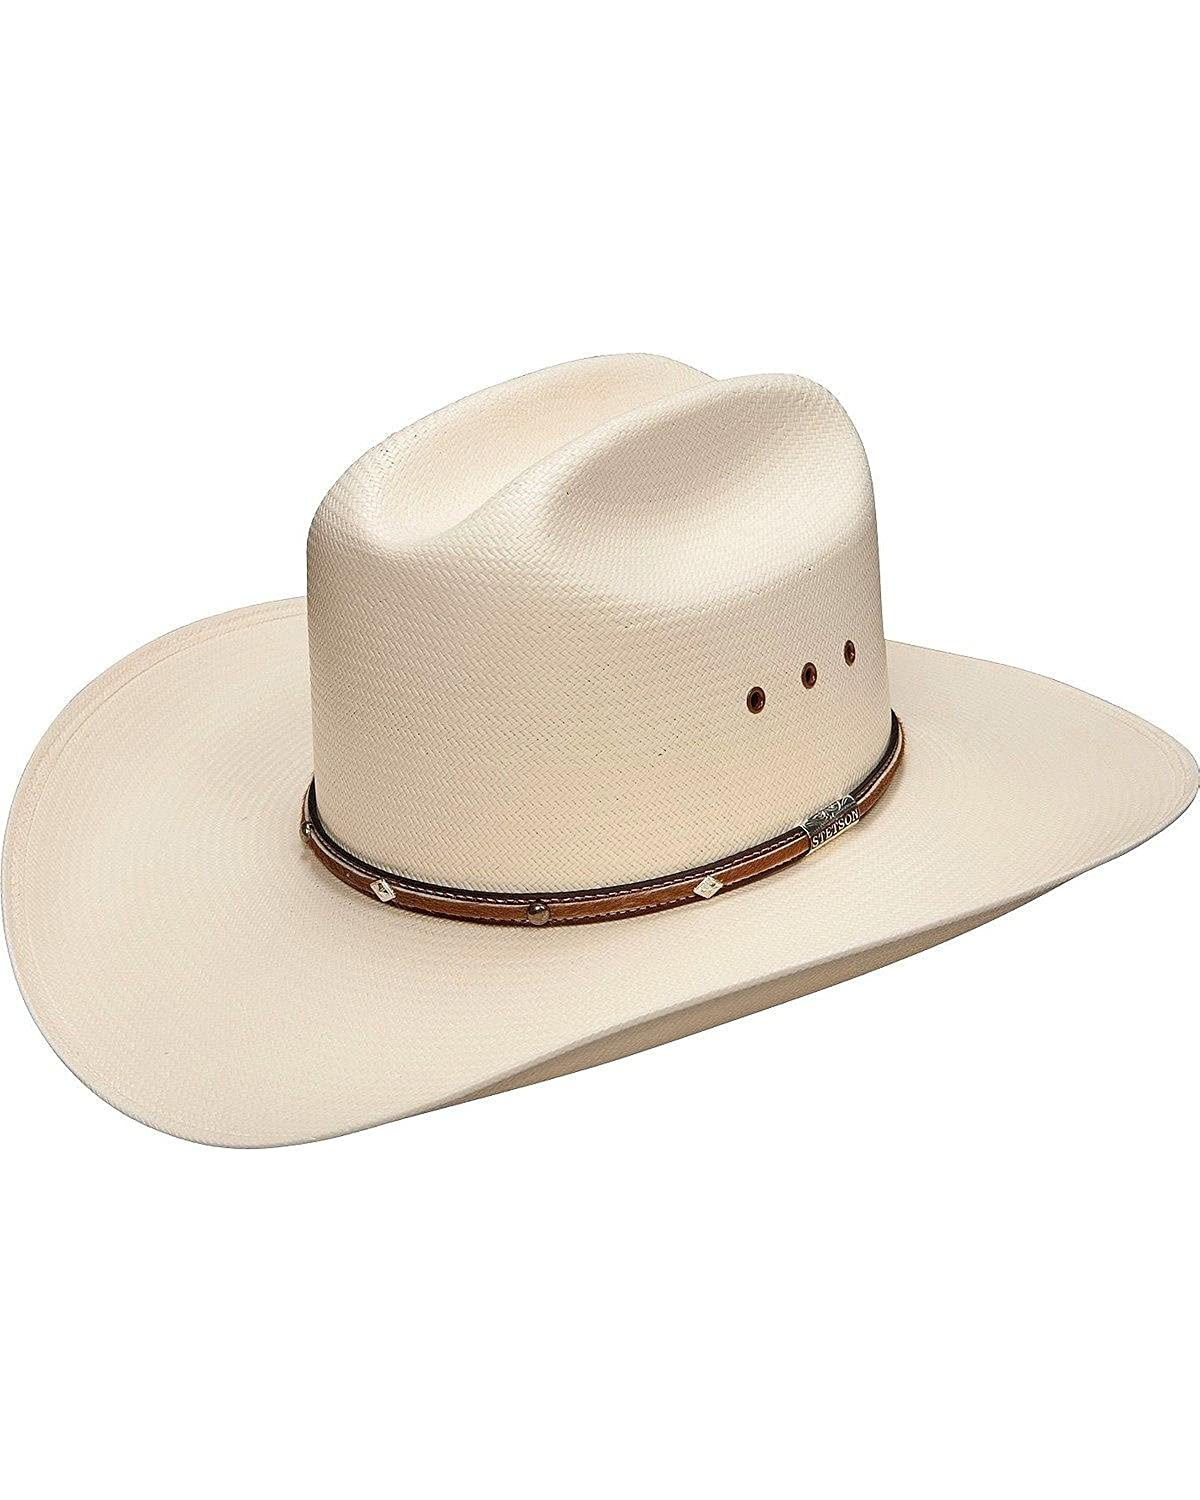 Stetson Men s Angus 10X Shantung Straw Cowboy Hat at Amazon Men s Clothing  store  Cowboy Hats For Men 84bc25a9731